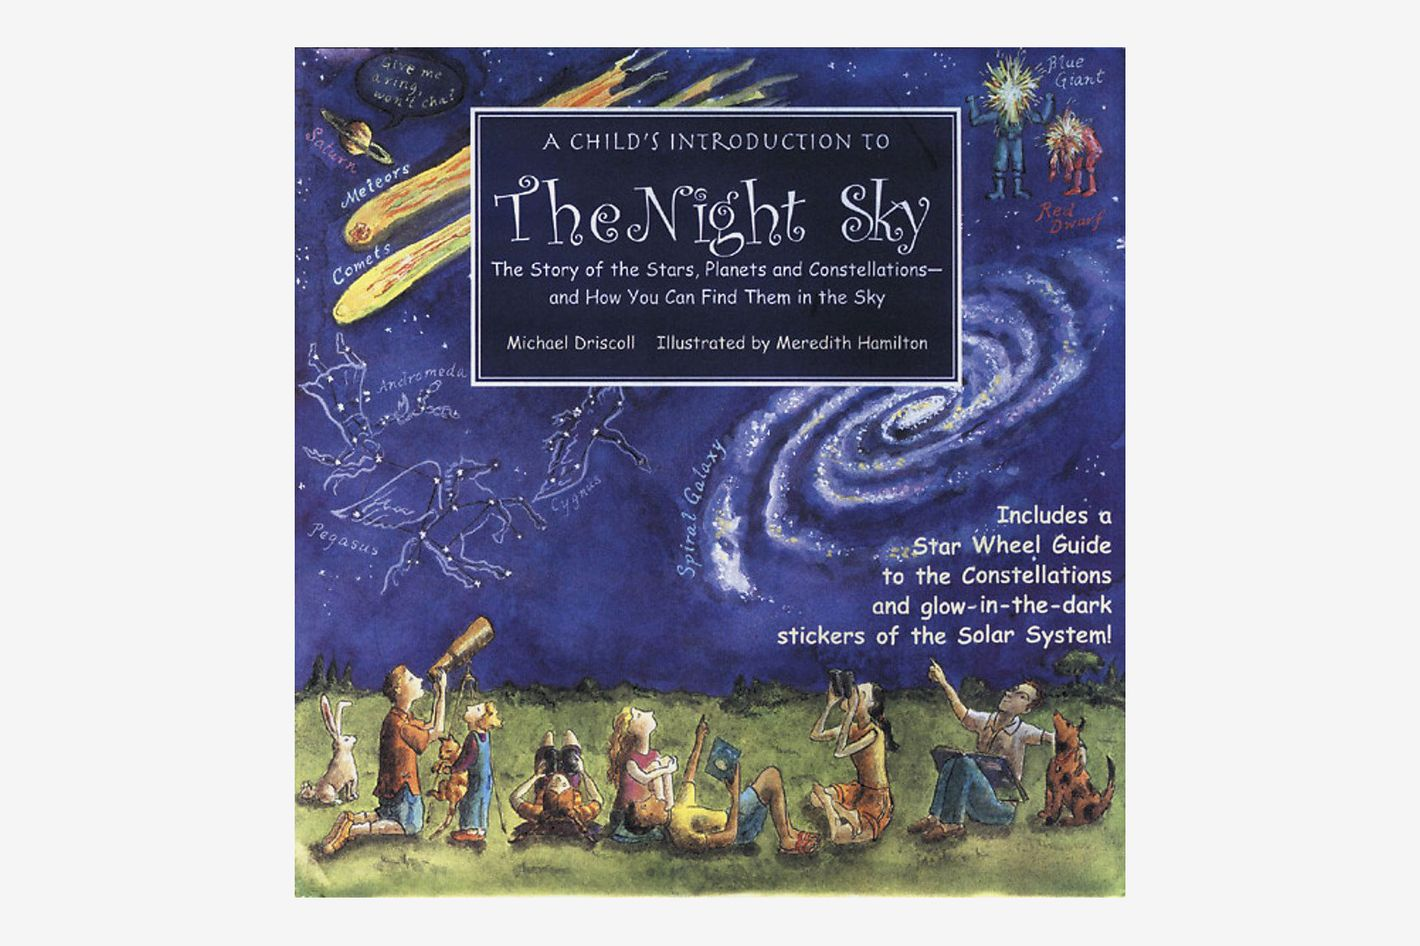 Child's Introduction to the Night Sky: The Story of the Stars, Planets, and Constellations and How You Can Find Them in the Sky